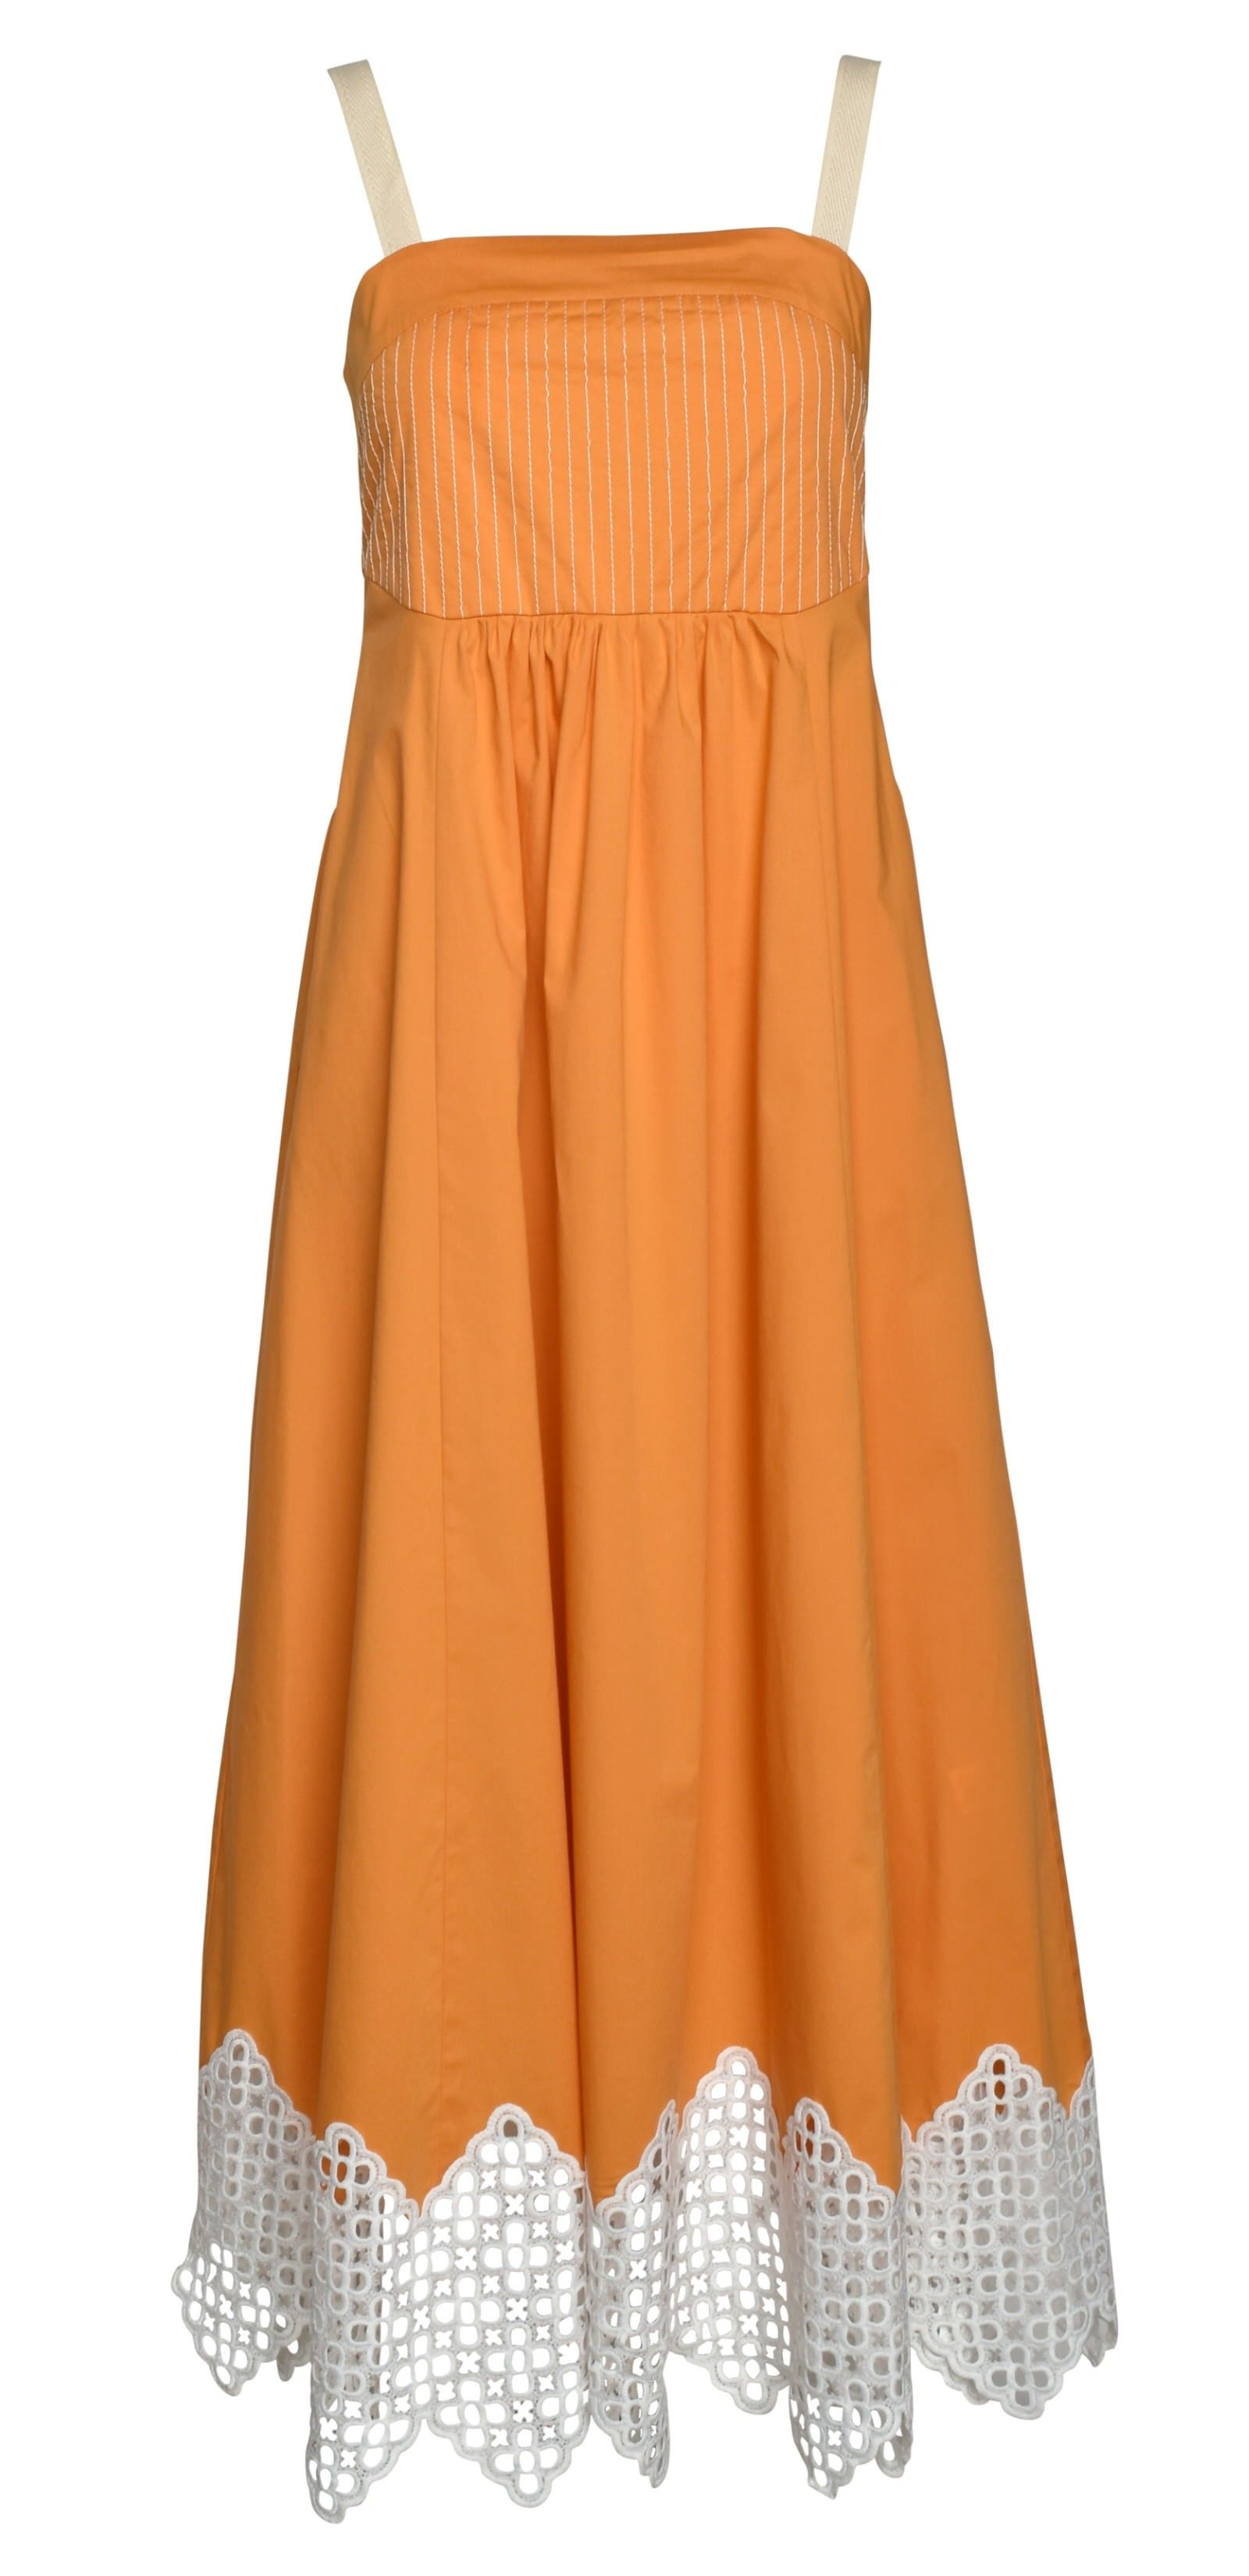 BEATRICE B - Damen Kleid - Abito Orange